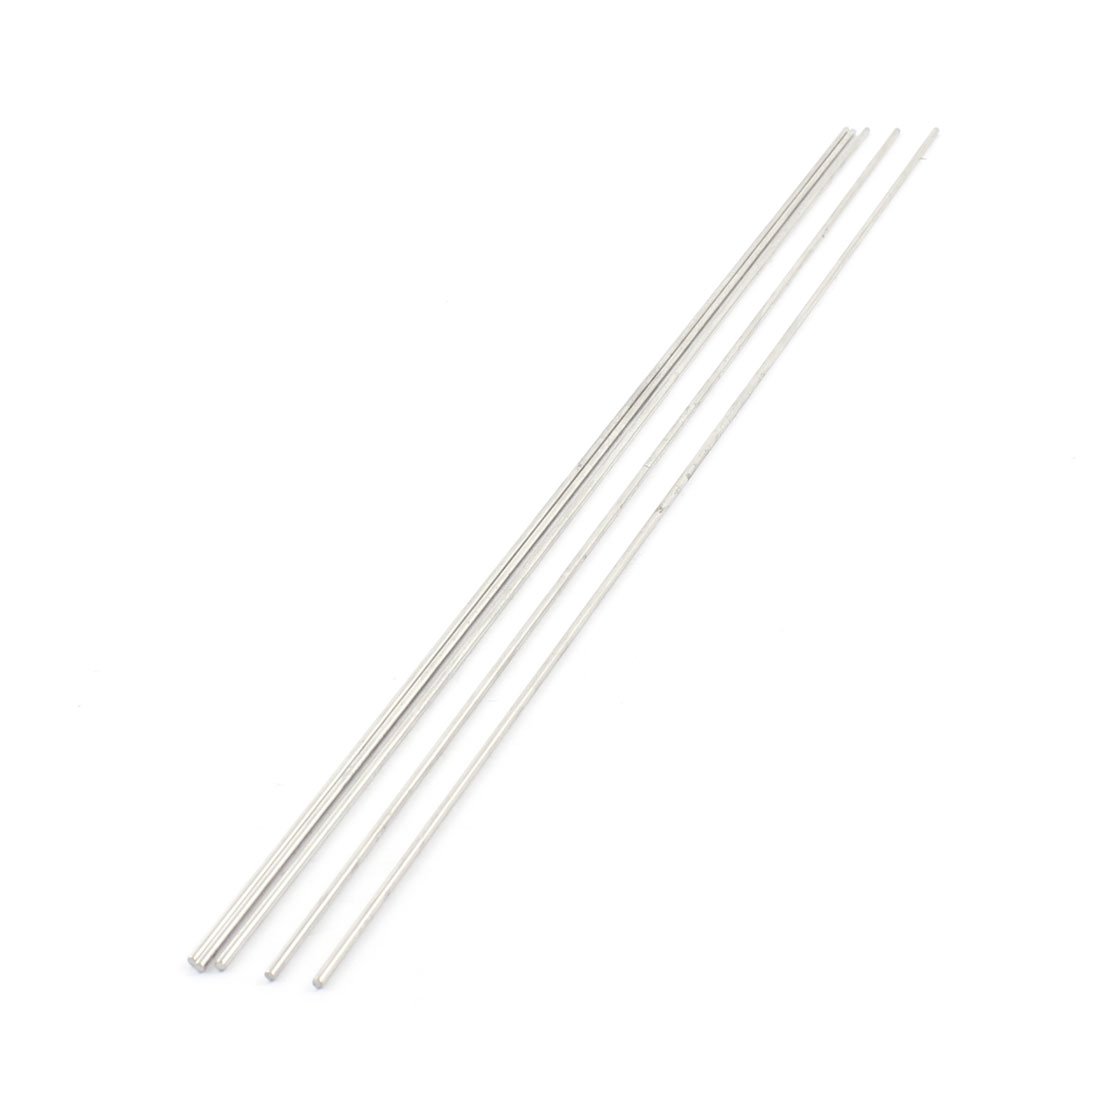 5Pcs 2mm Dia 350mm Length Stainless Steel Round Rod Shaft for RC Toy Car